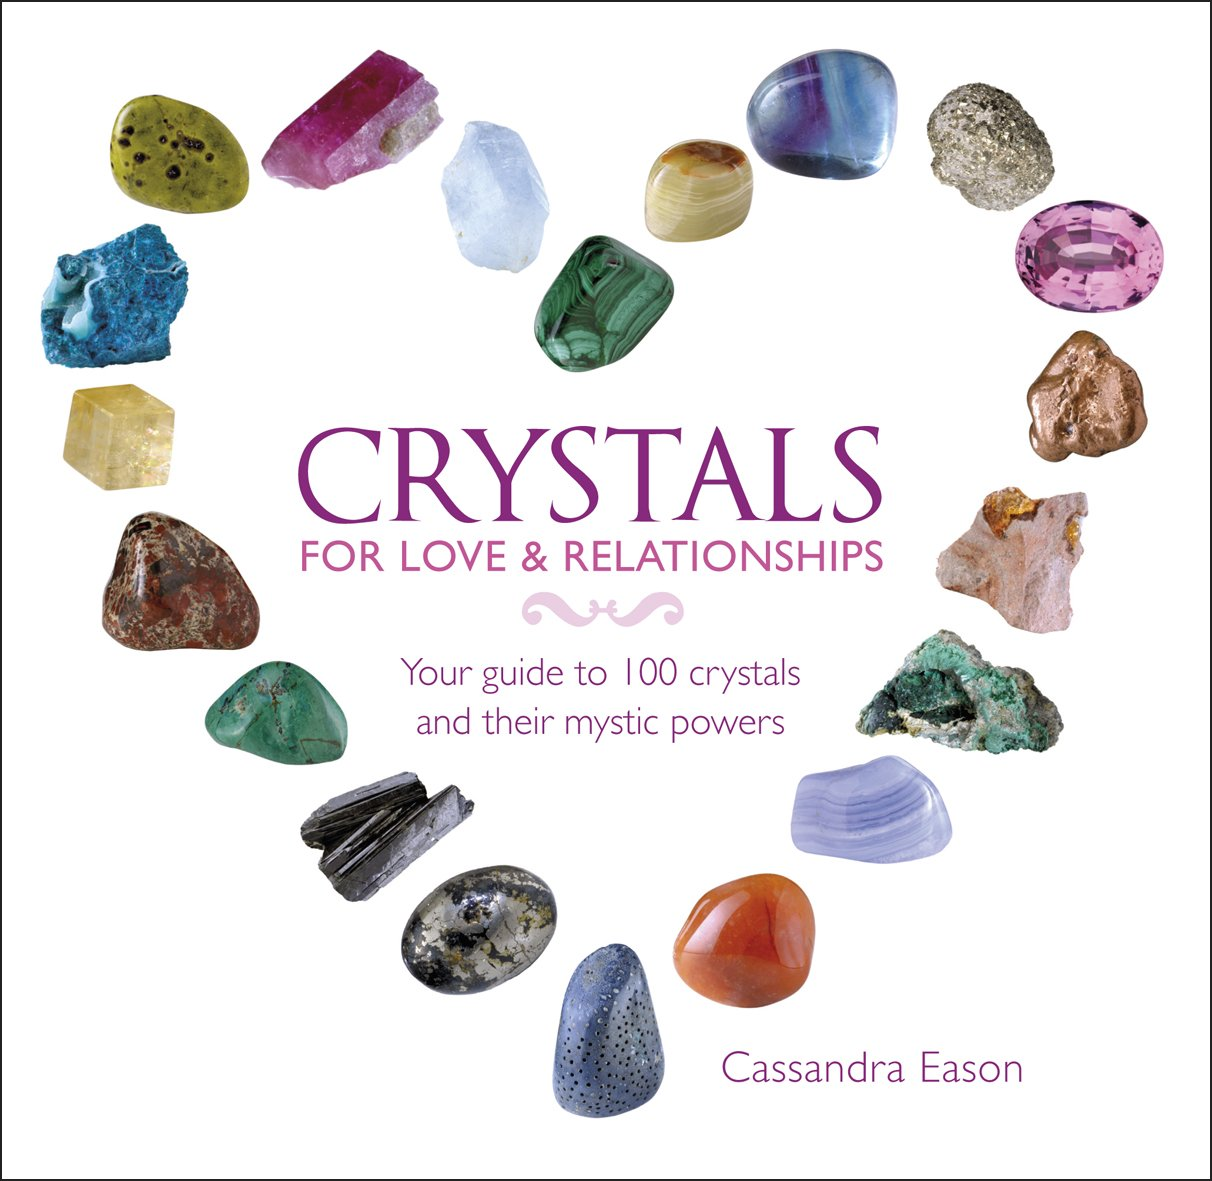 Crystals for Love & Relationships: Your Guide to 100 Crystals and Their Mystic Powers